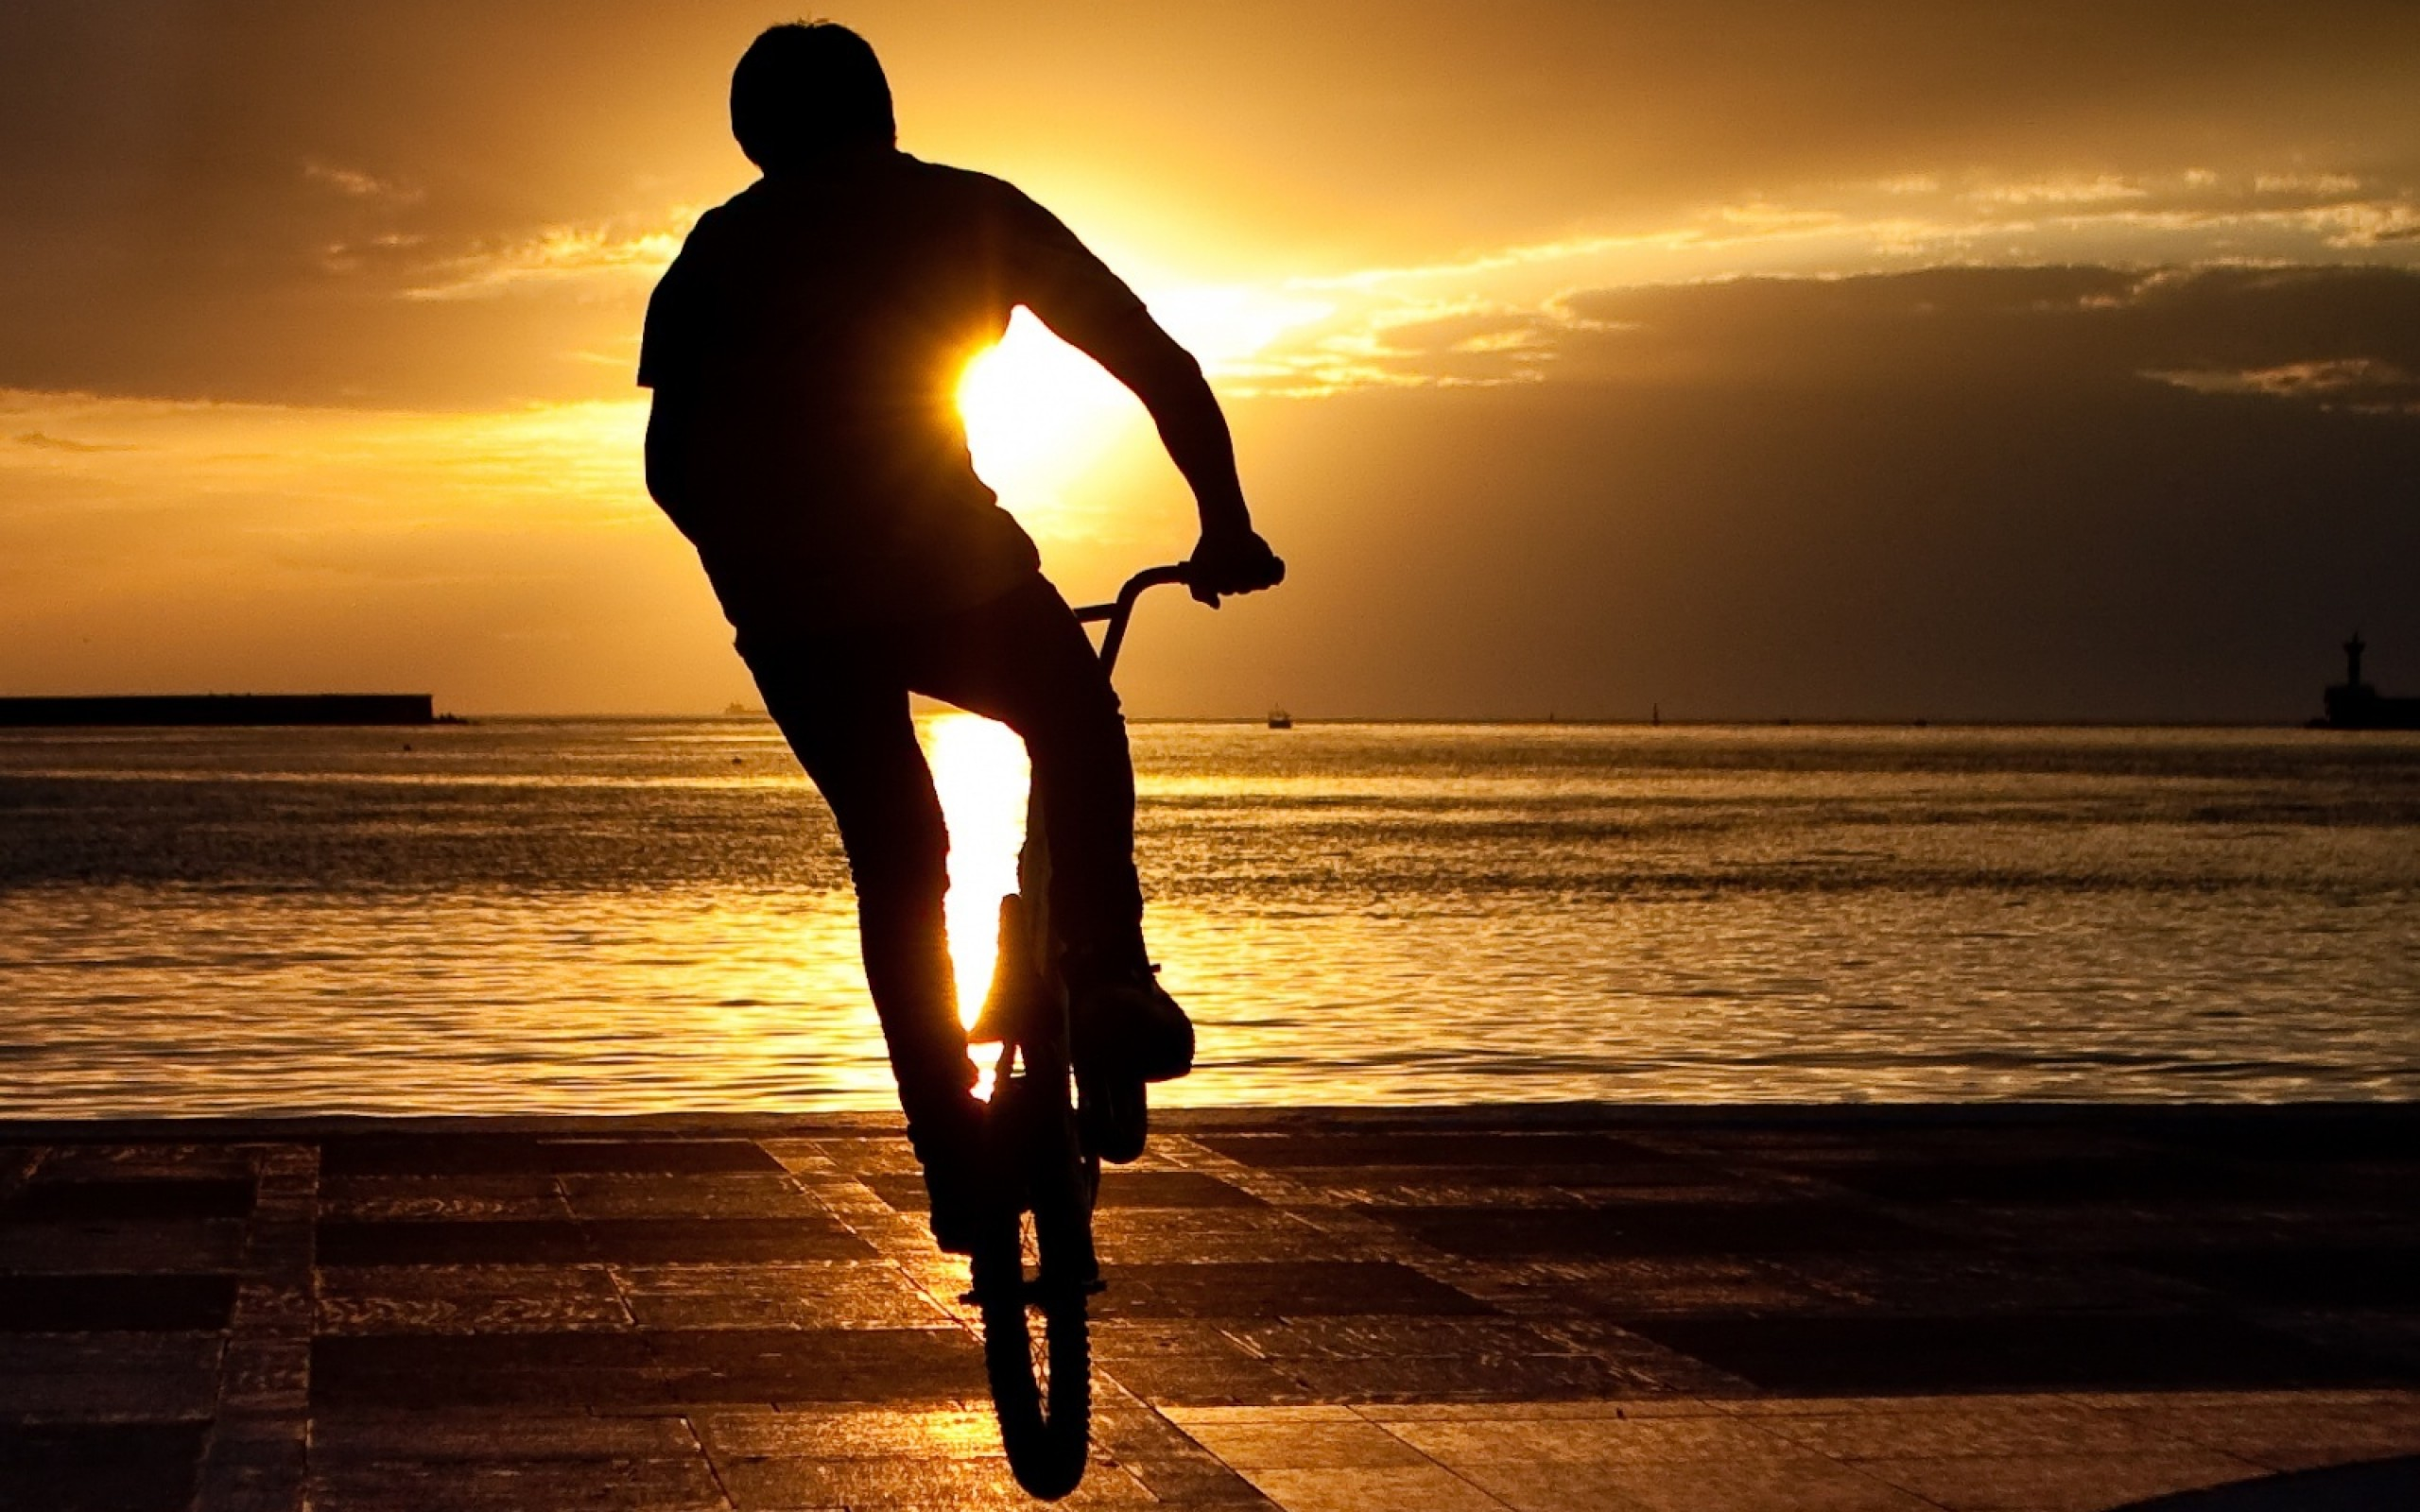 bicycle-sea-coast-sunset-sports-1600x2560